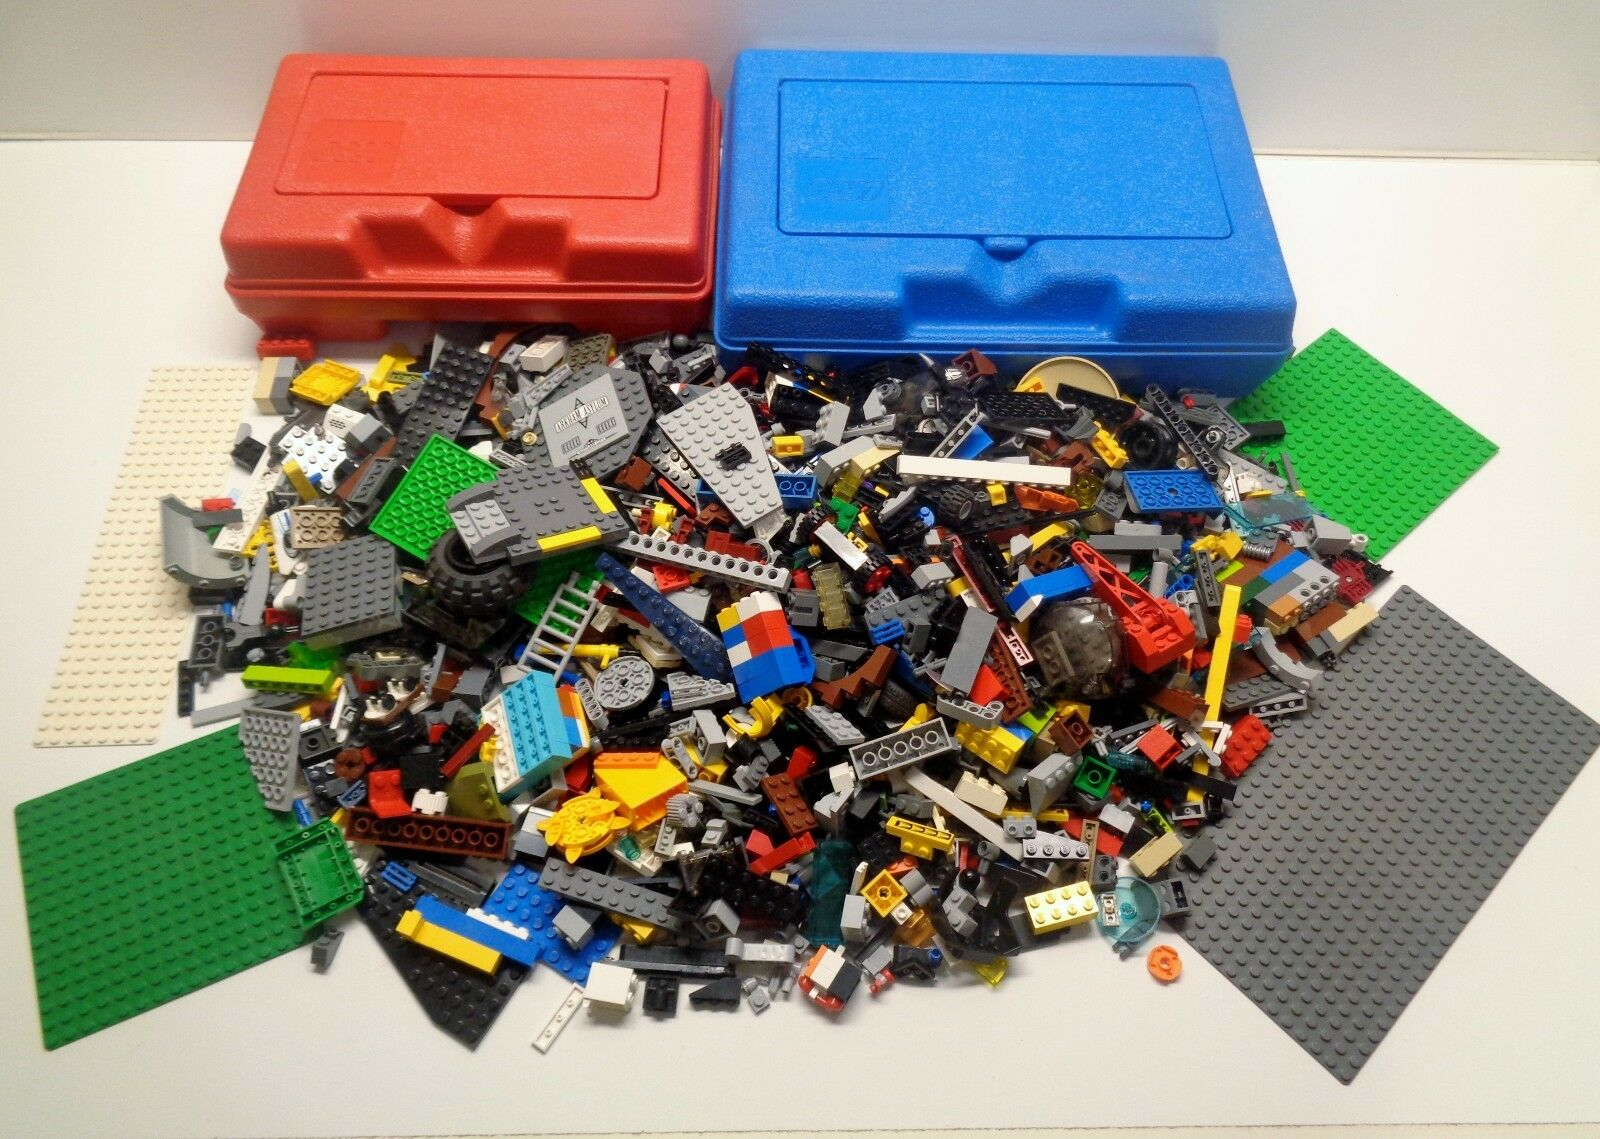 2 Vintage LEGO Red & bluee Storage Containers & 4.75 pounds of Lego Parts Pieces